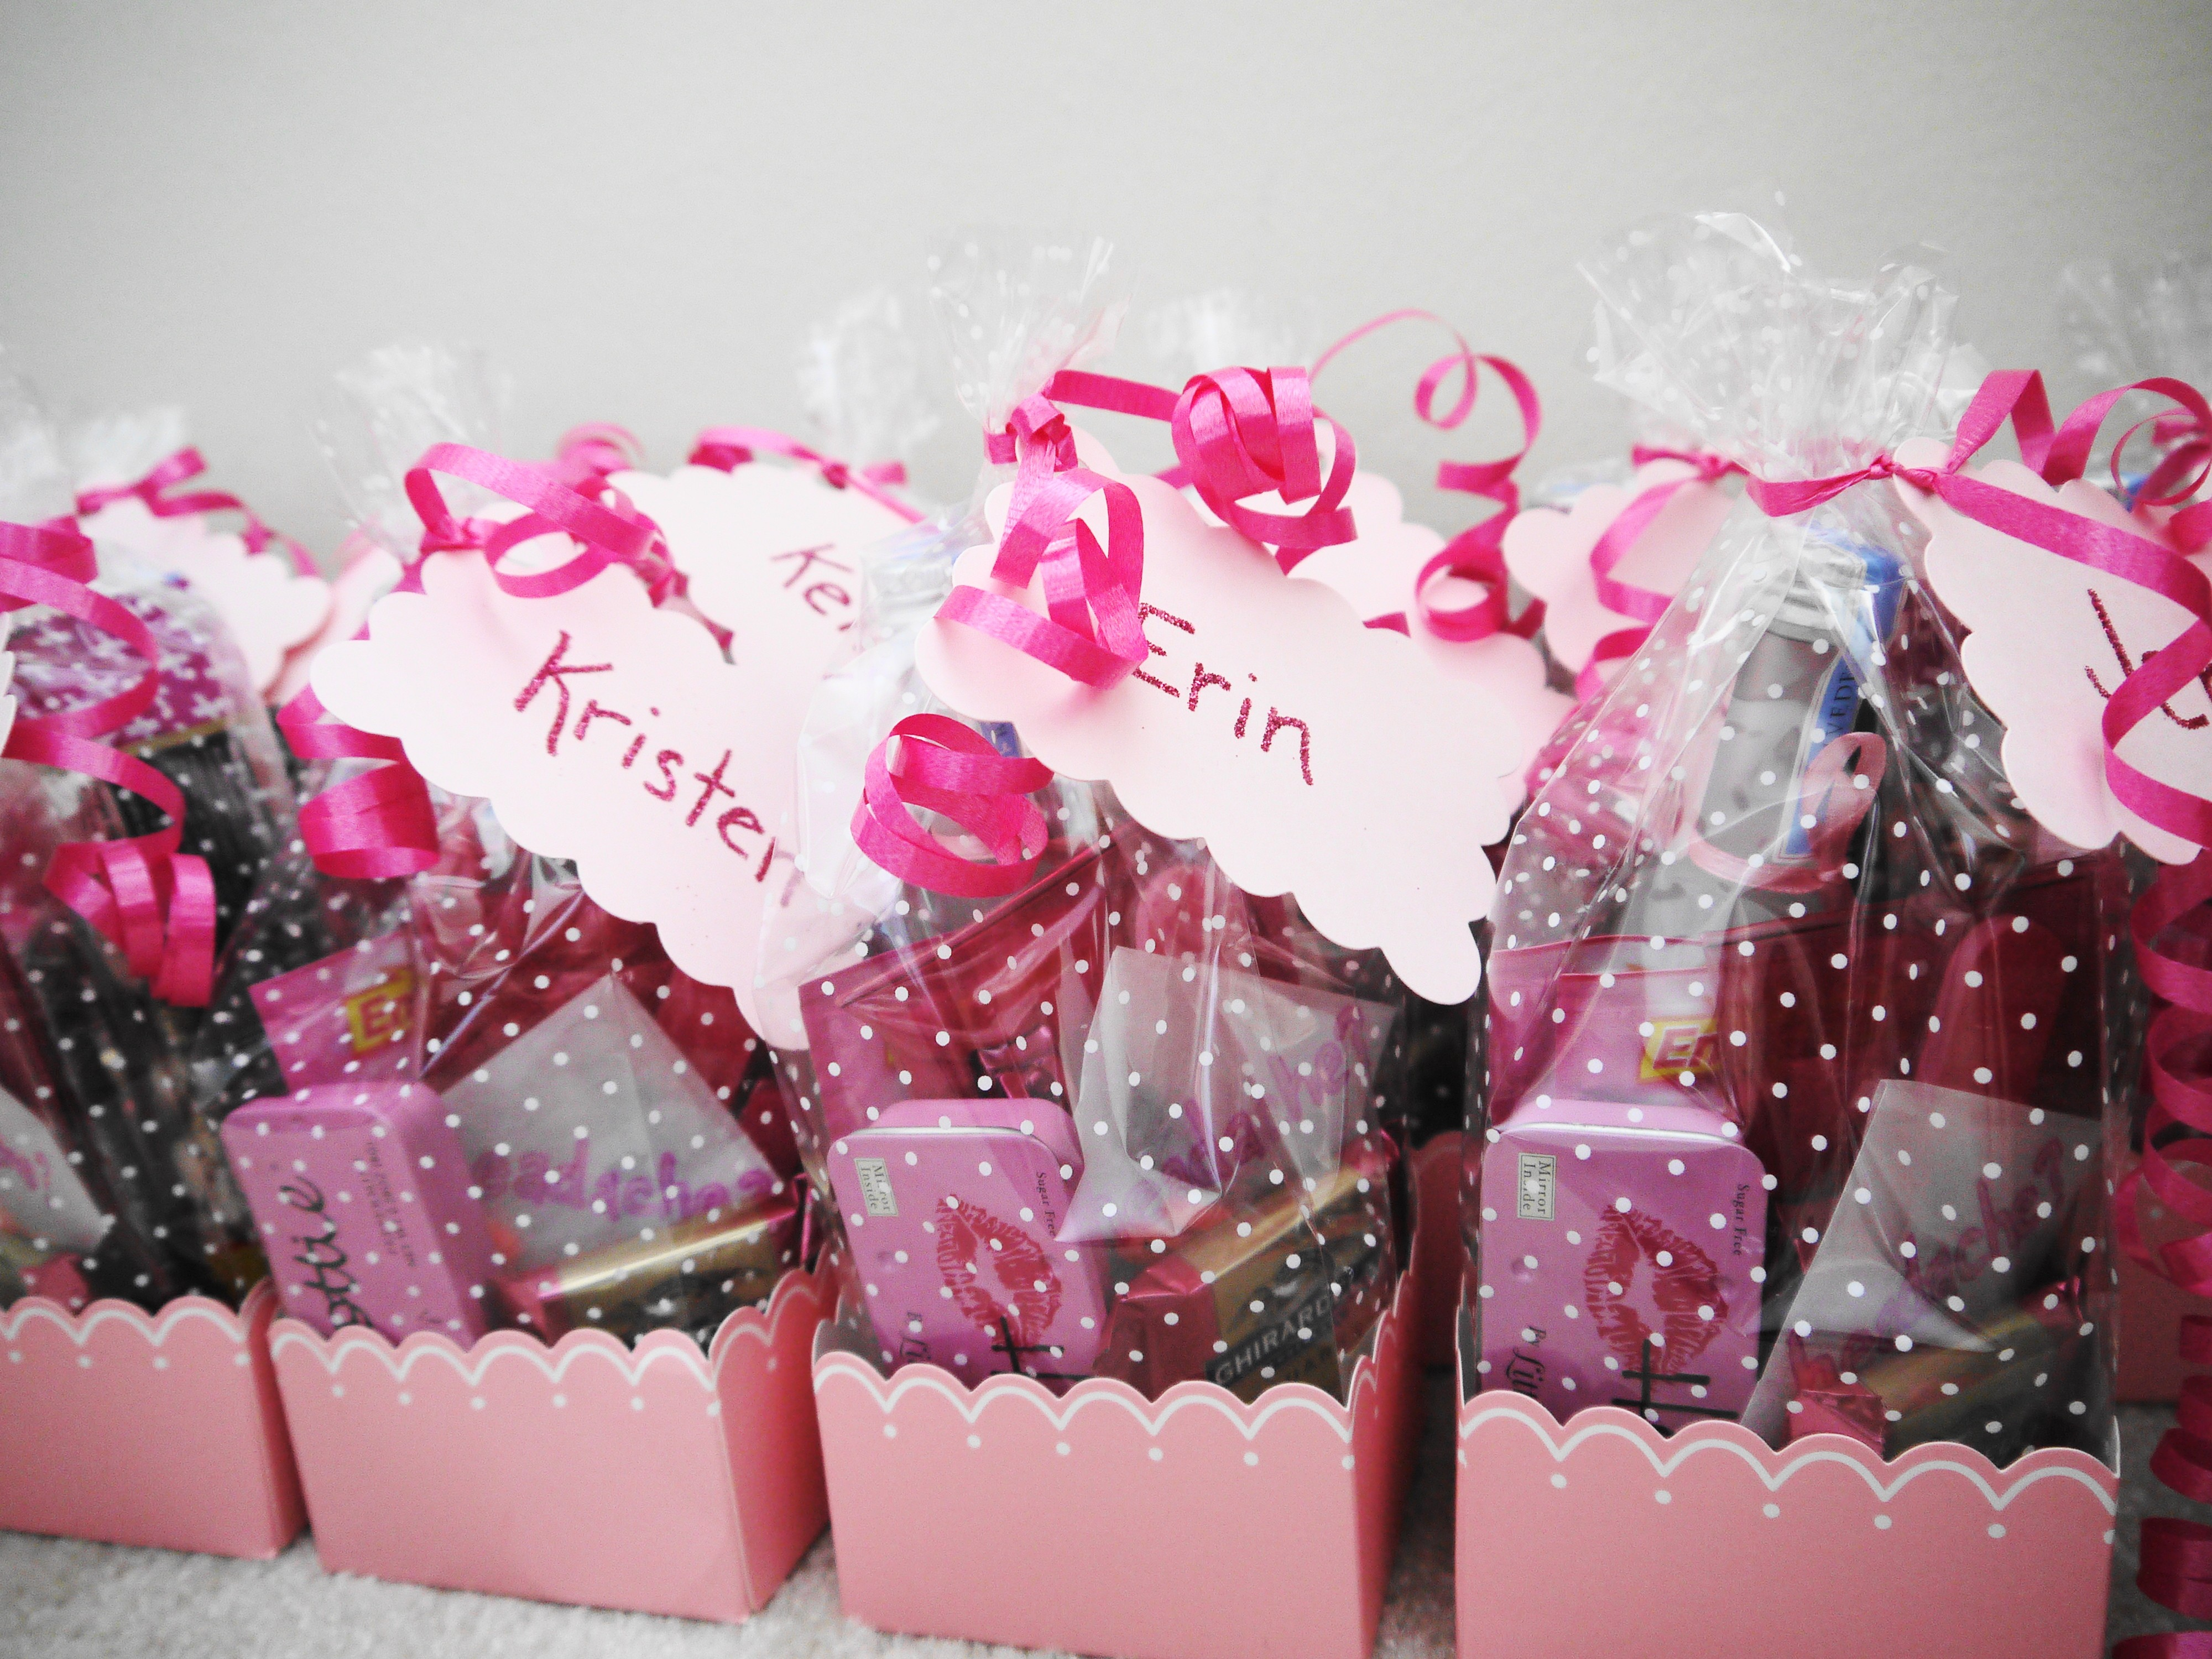 Bachelorette Party Gifts Cly - Gift Ideas